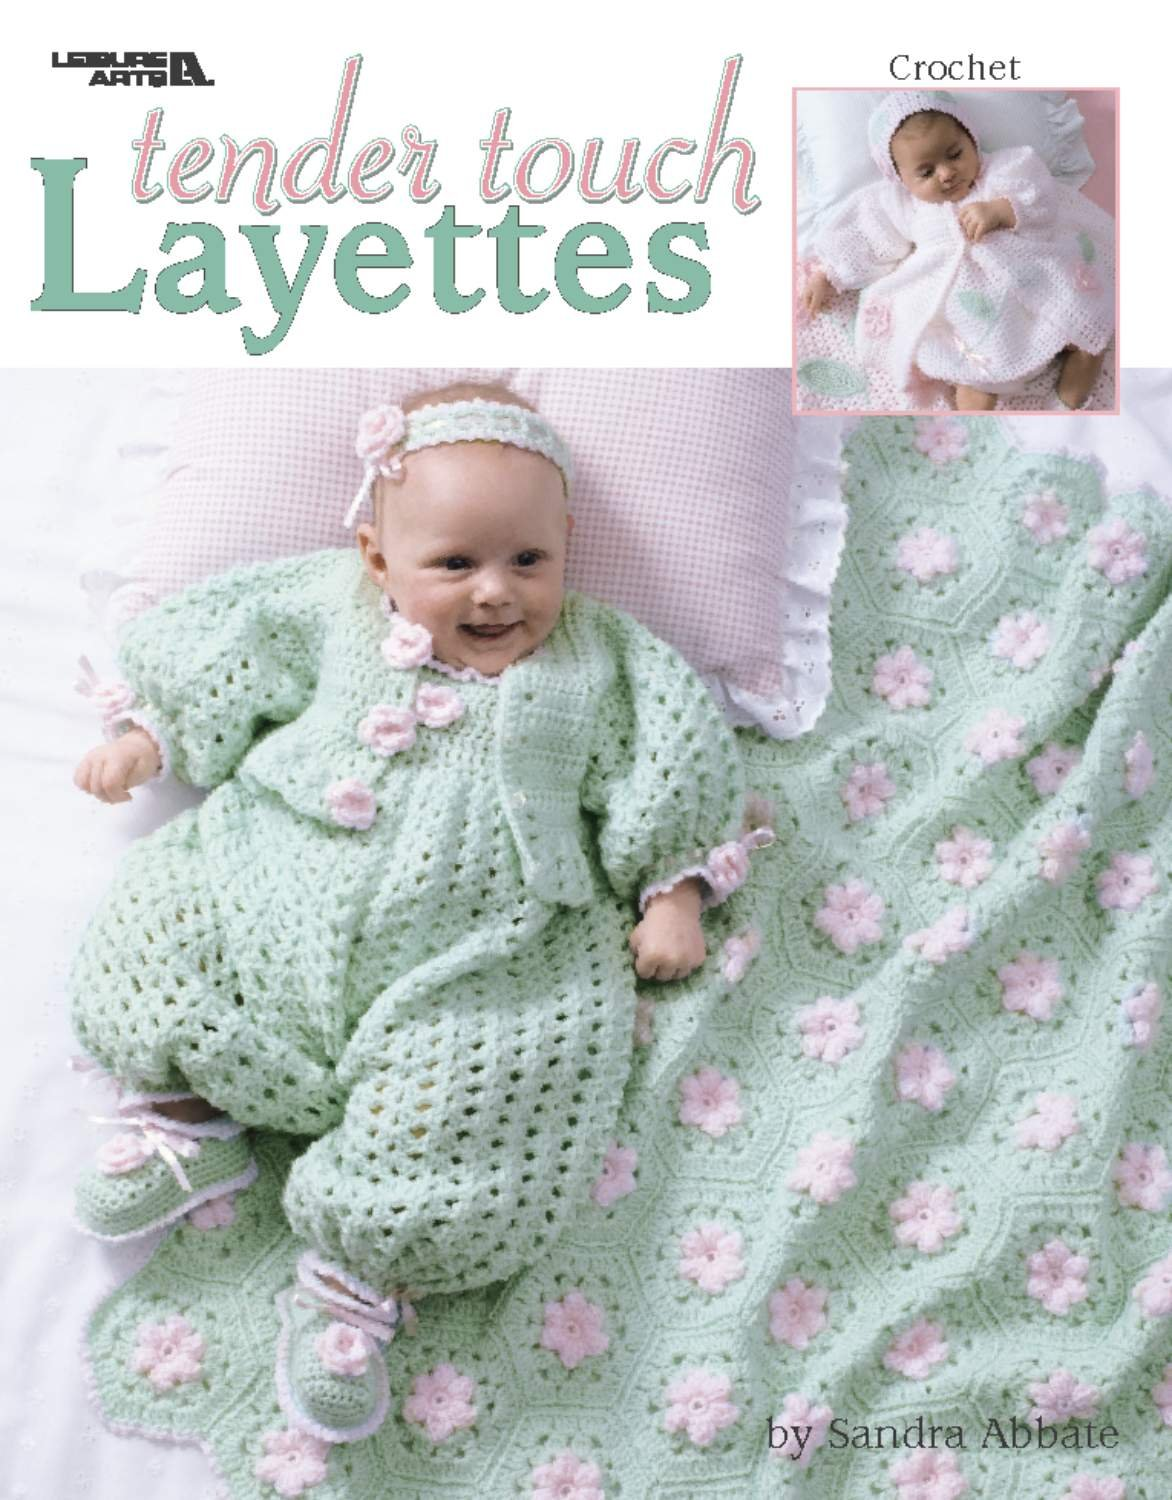 Tender Touch Layettes (Crochet) (Leisure Arts #3363) PDF